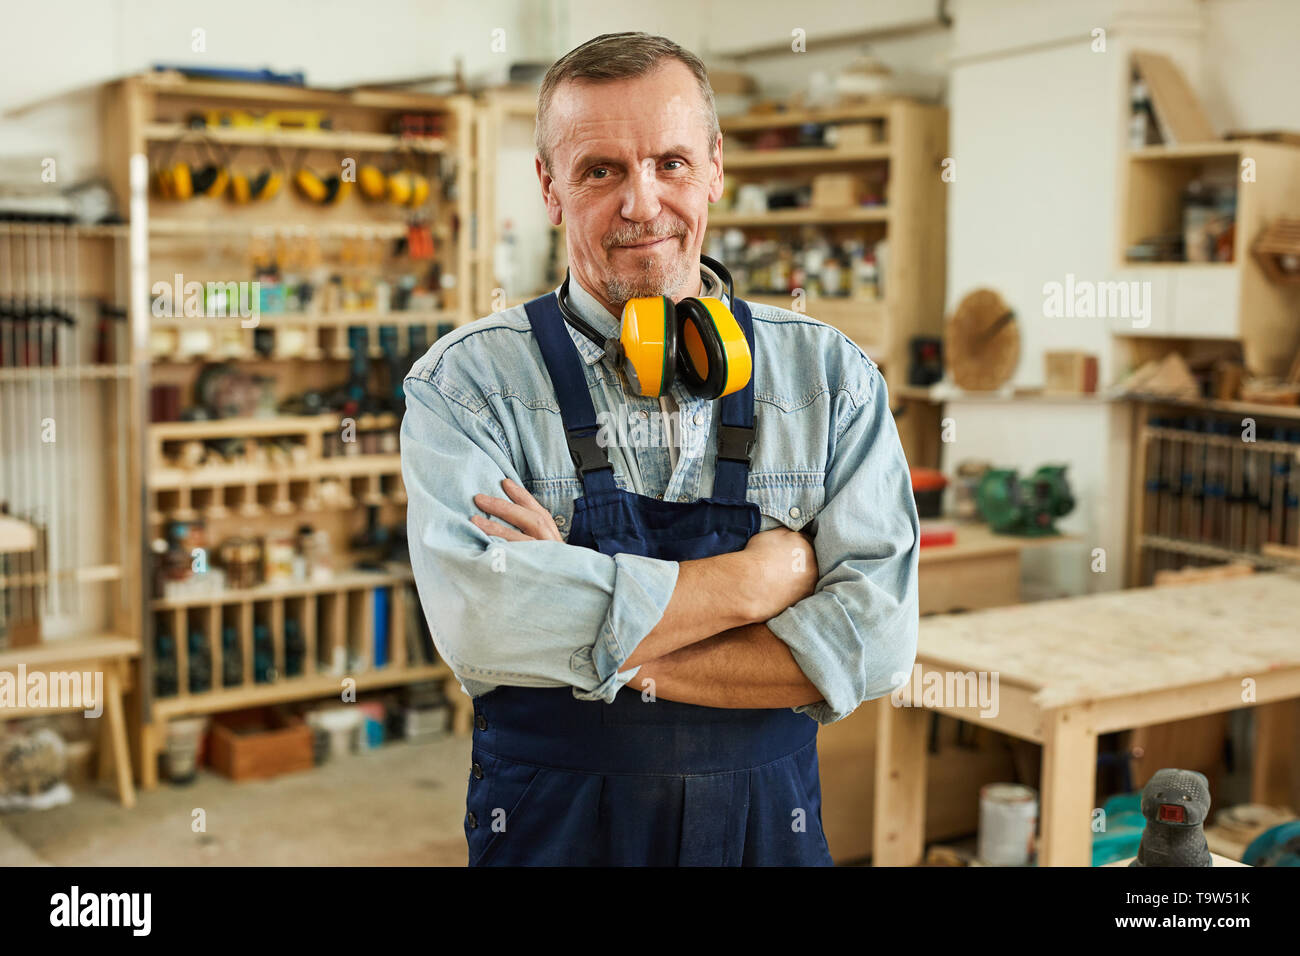 Waist up portrait of confident senior carpenter looking at camera while working in joinery, copy space - Stock Image